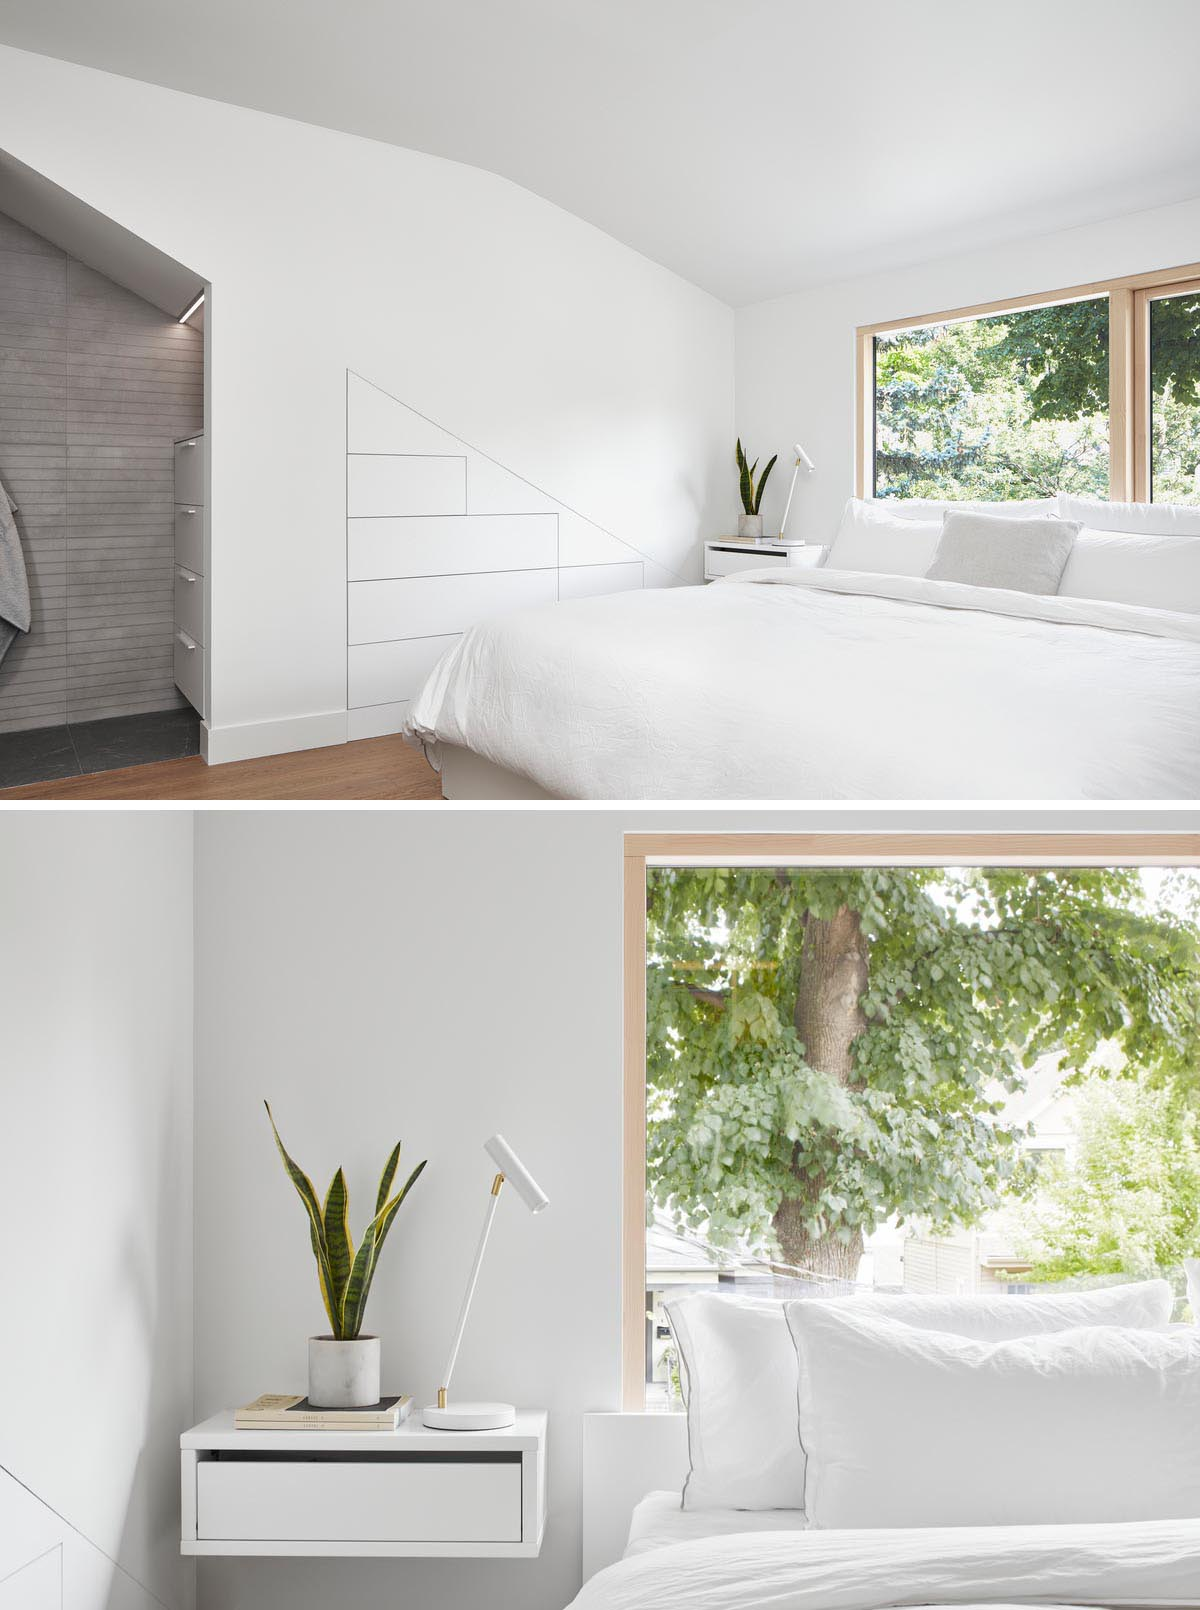 A modern Scandinavian bedroom design with built-in storage in the wall, and in a small alcove.